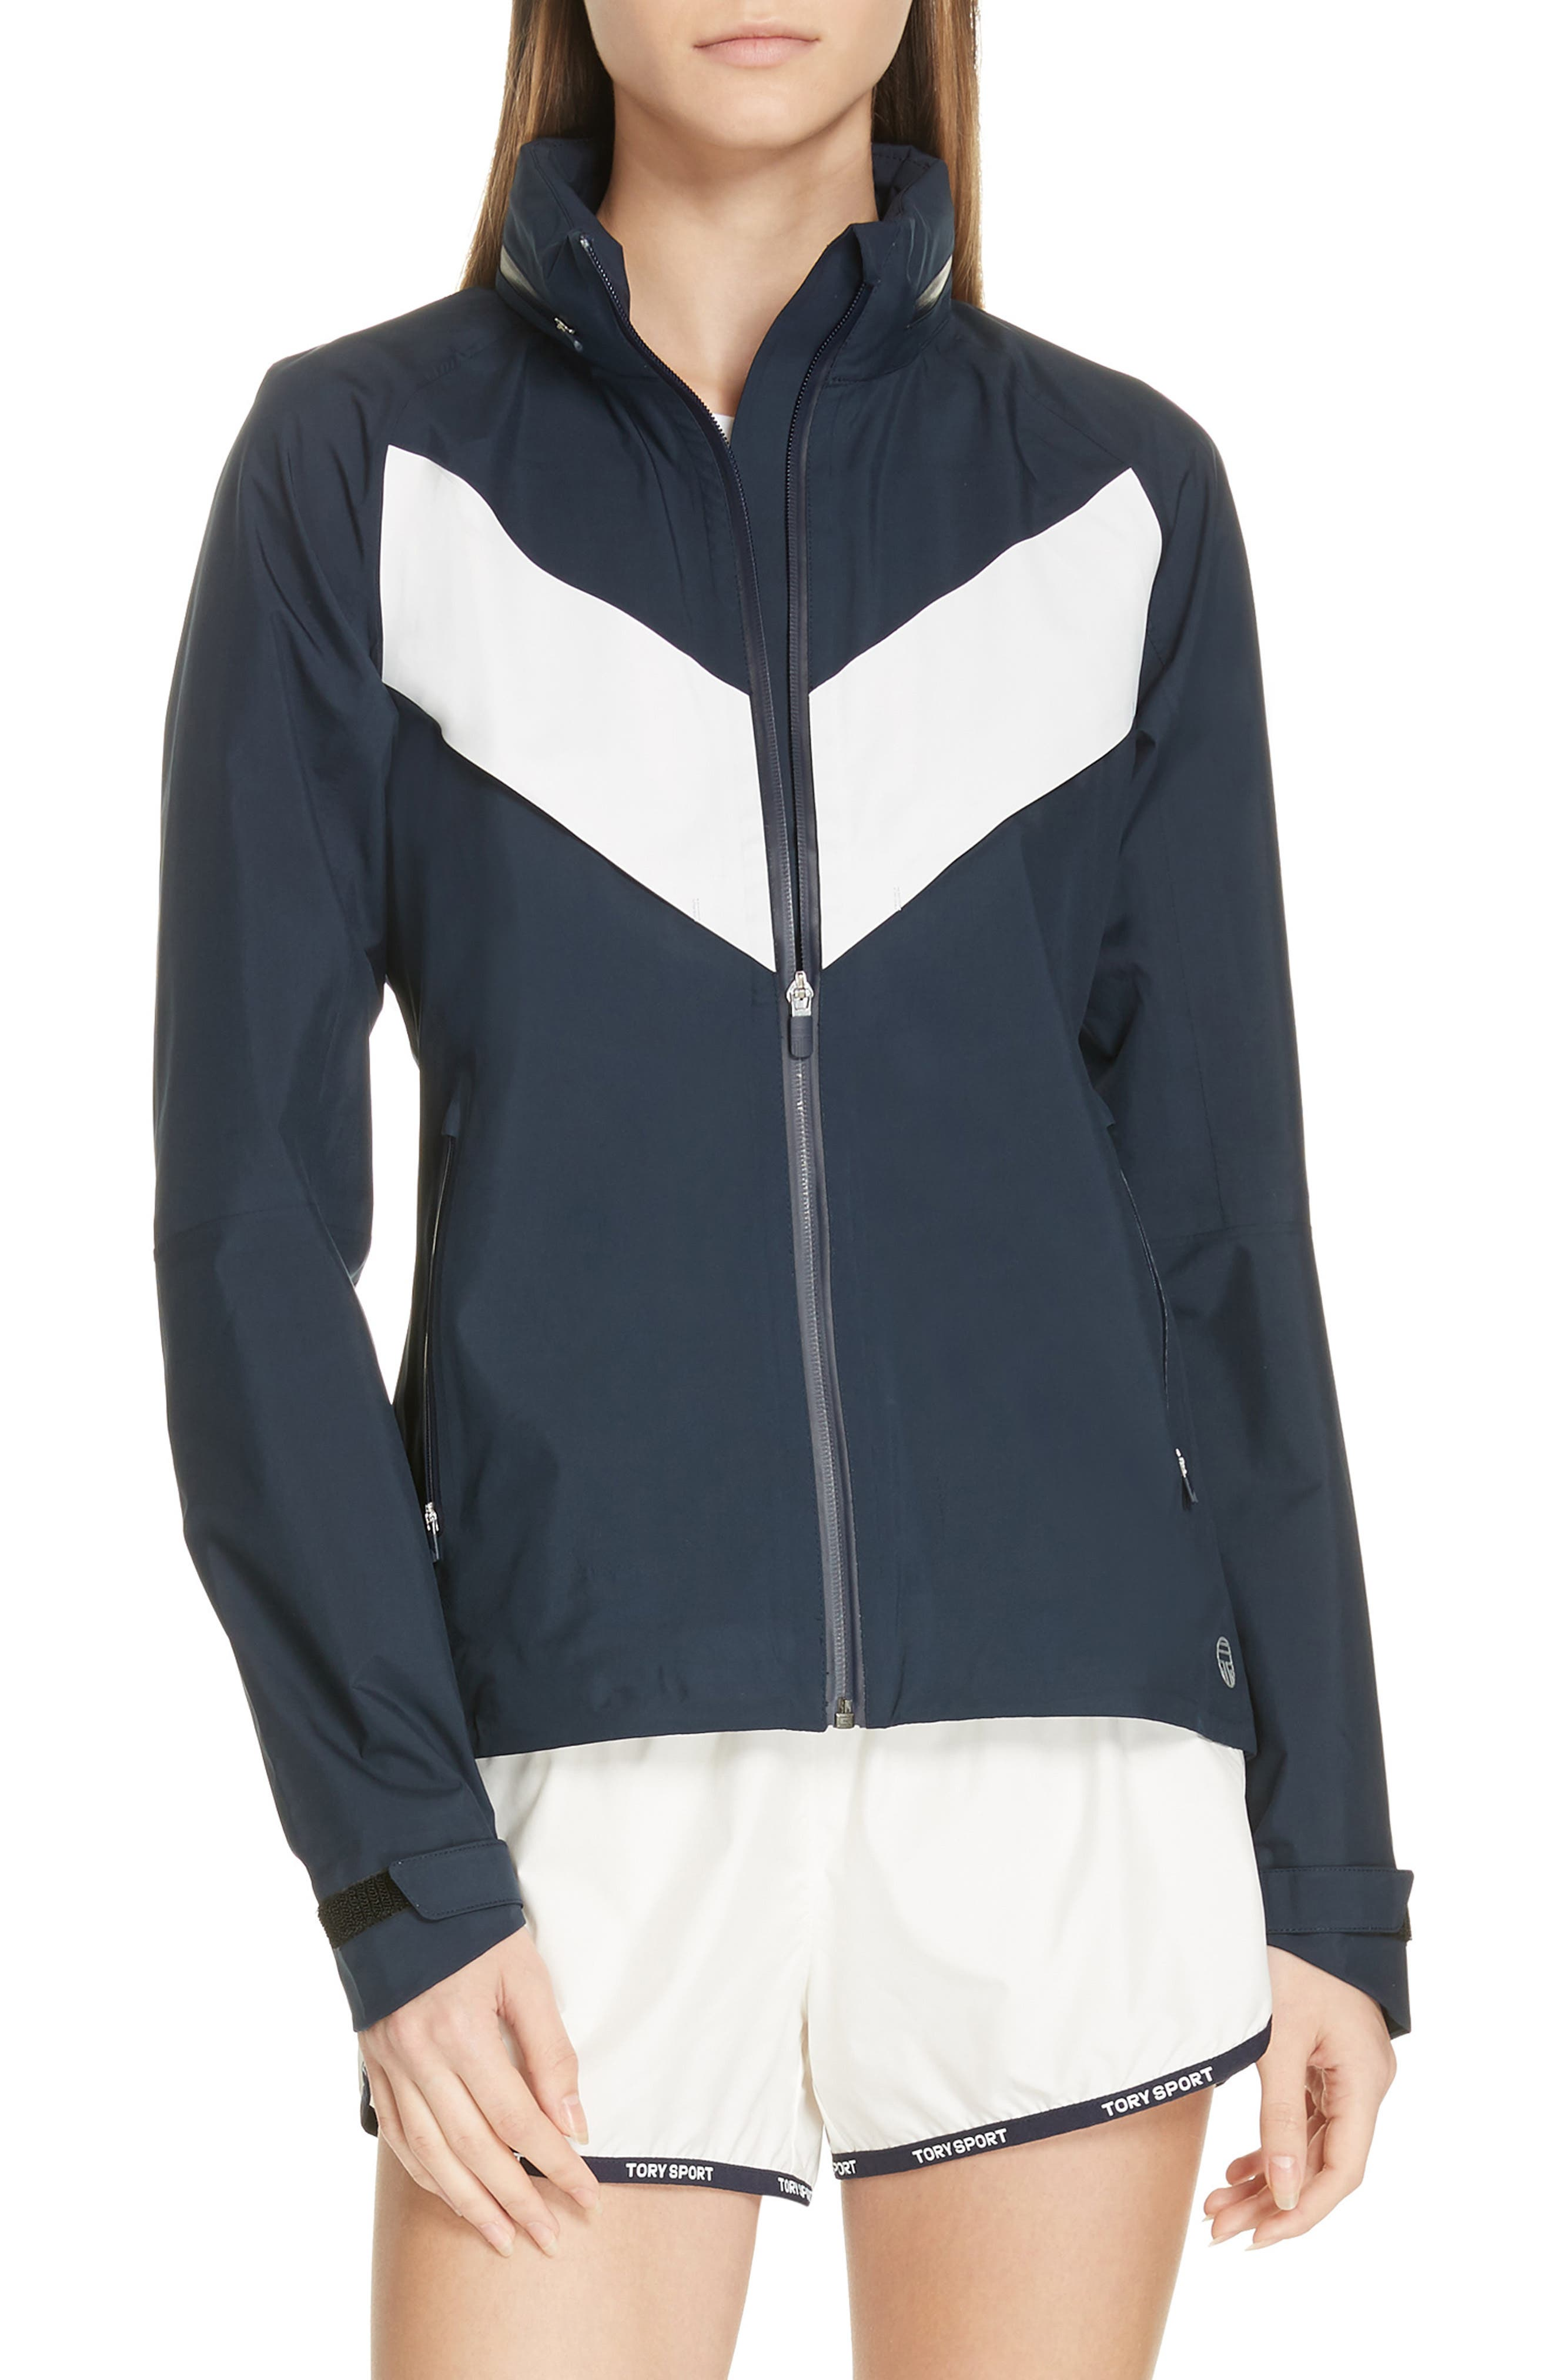 TORY SPORT All Weather Run Jacket, Main, color, TORY NAVY/ WHITE SNOW